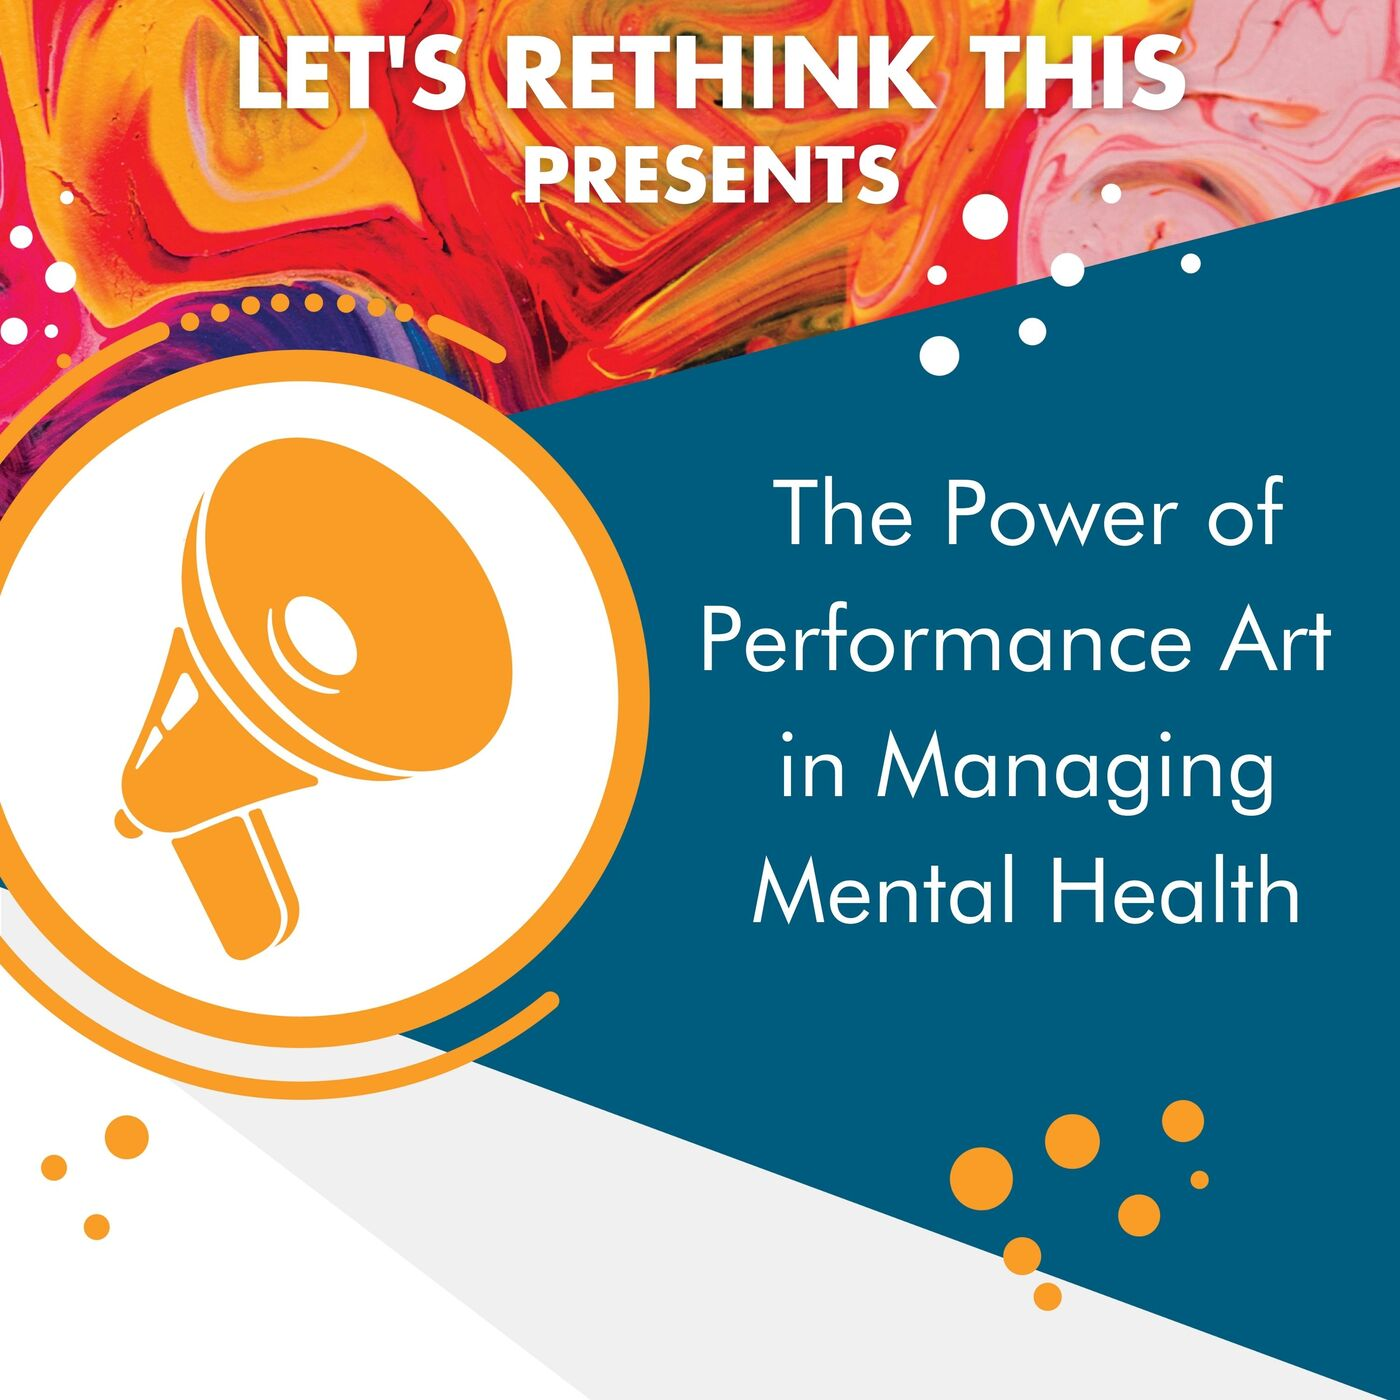 The Power of Performance Art in Managing Mental Health